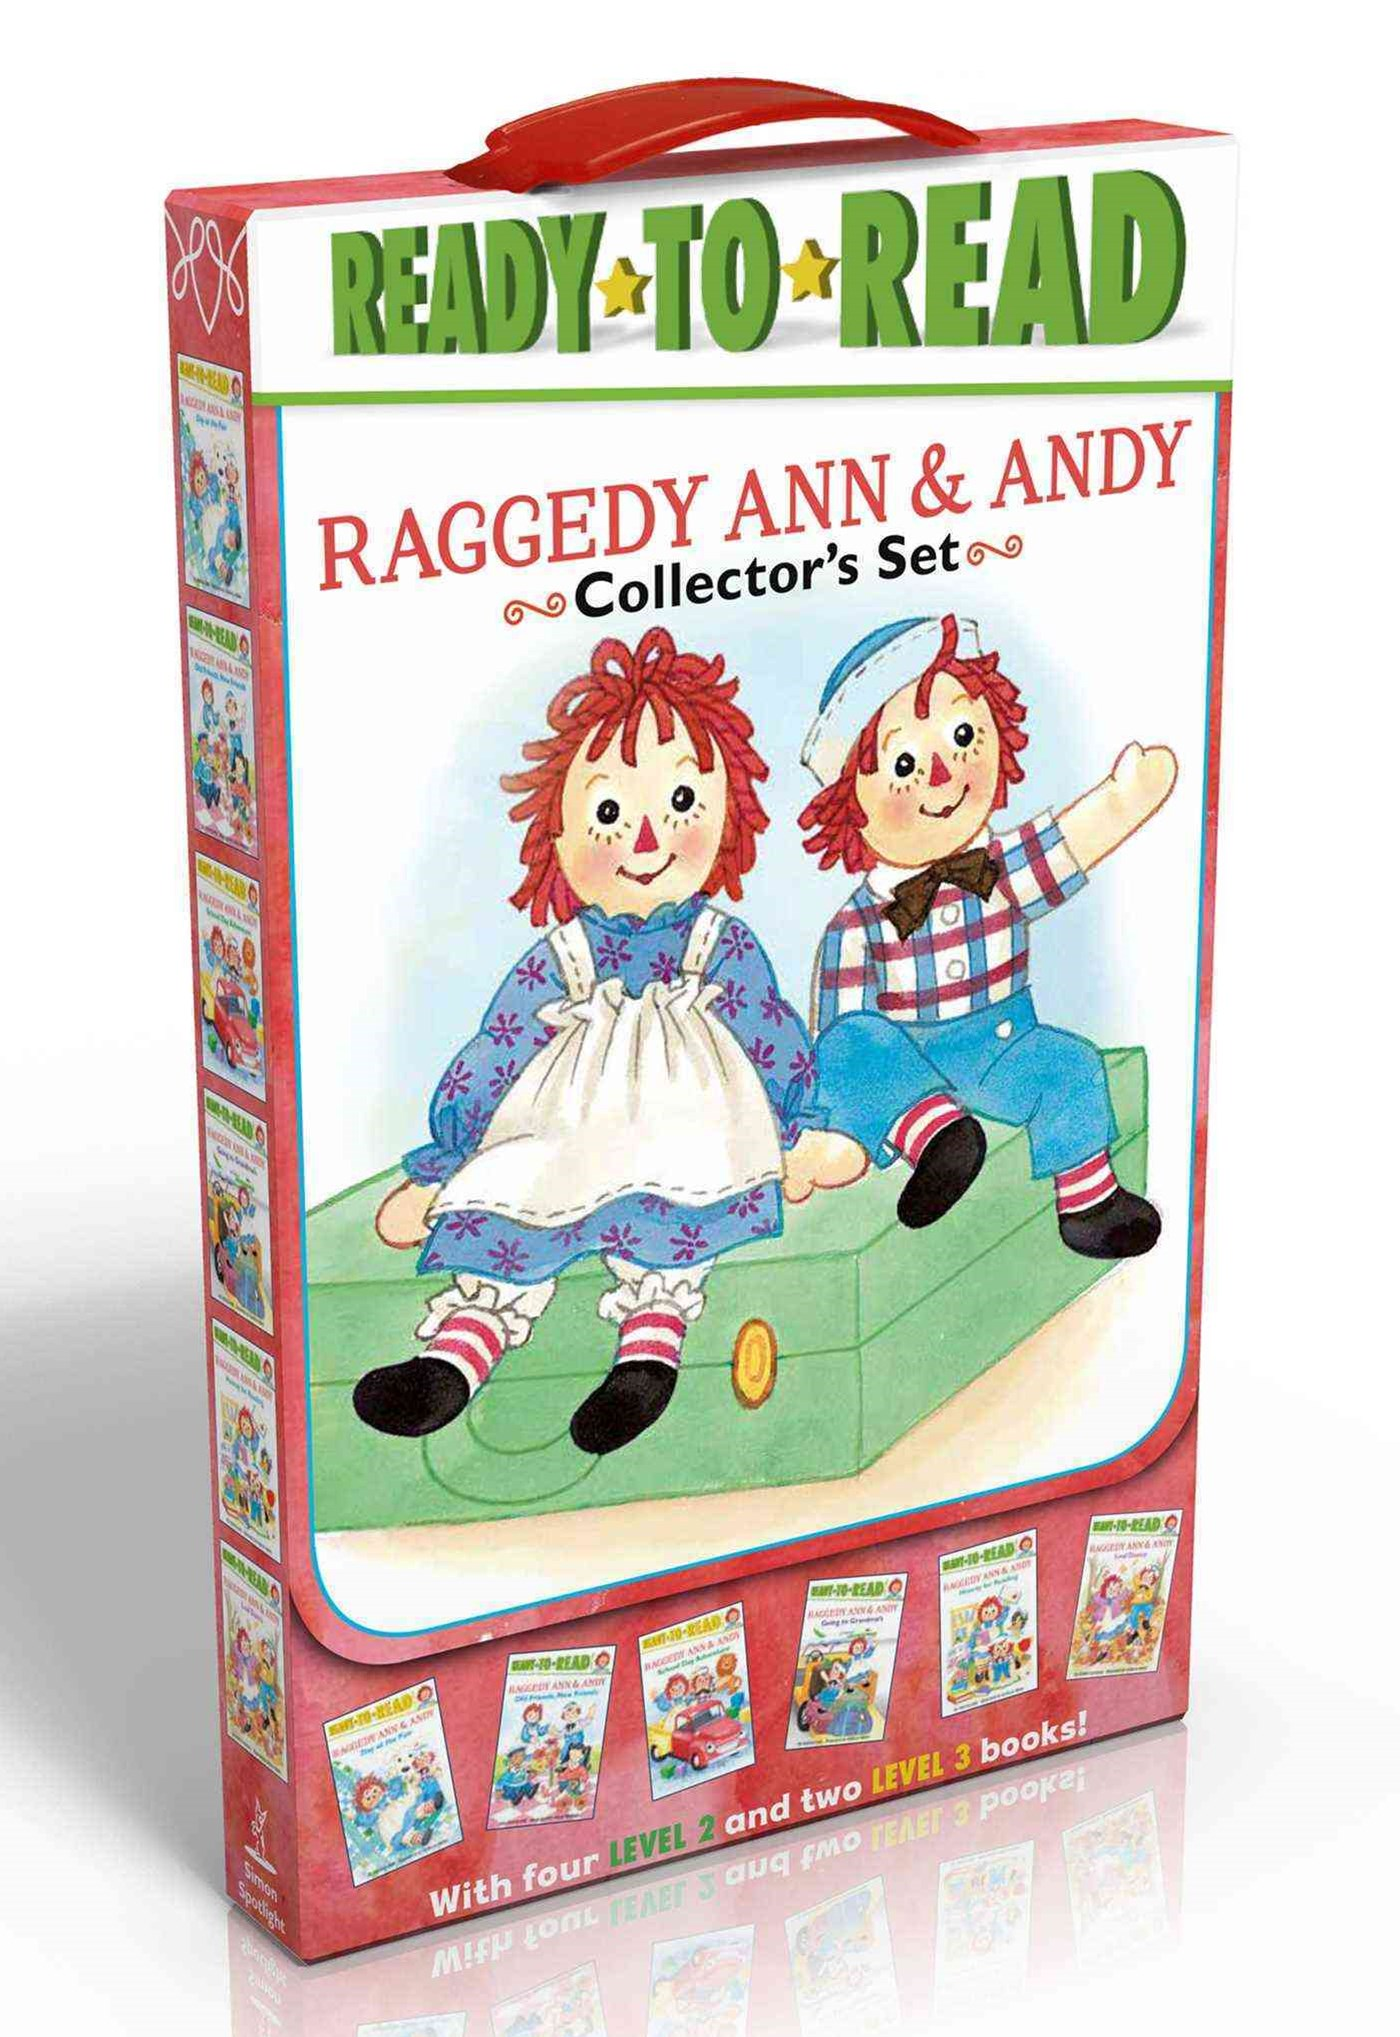 Raggedy Ann and Andy Ready-to-Read Collection